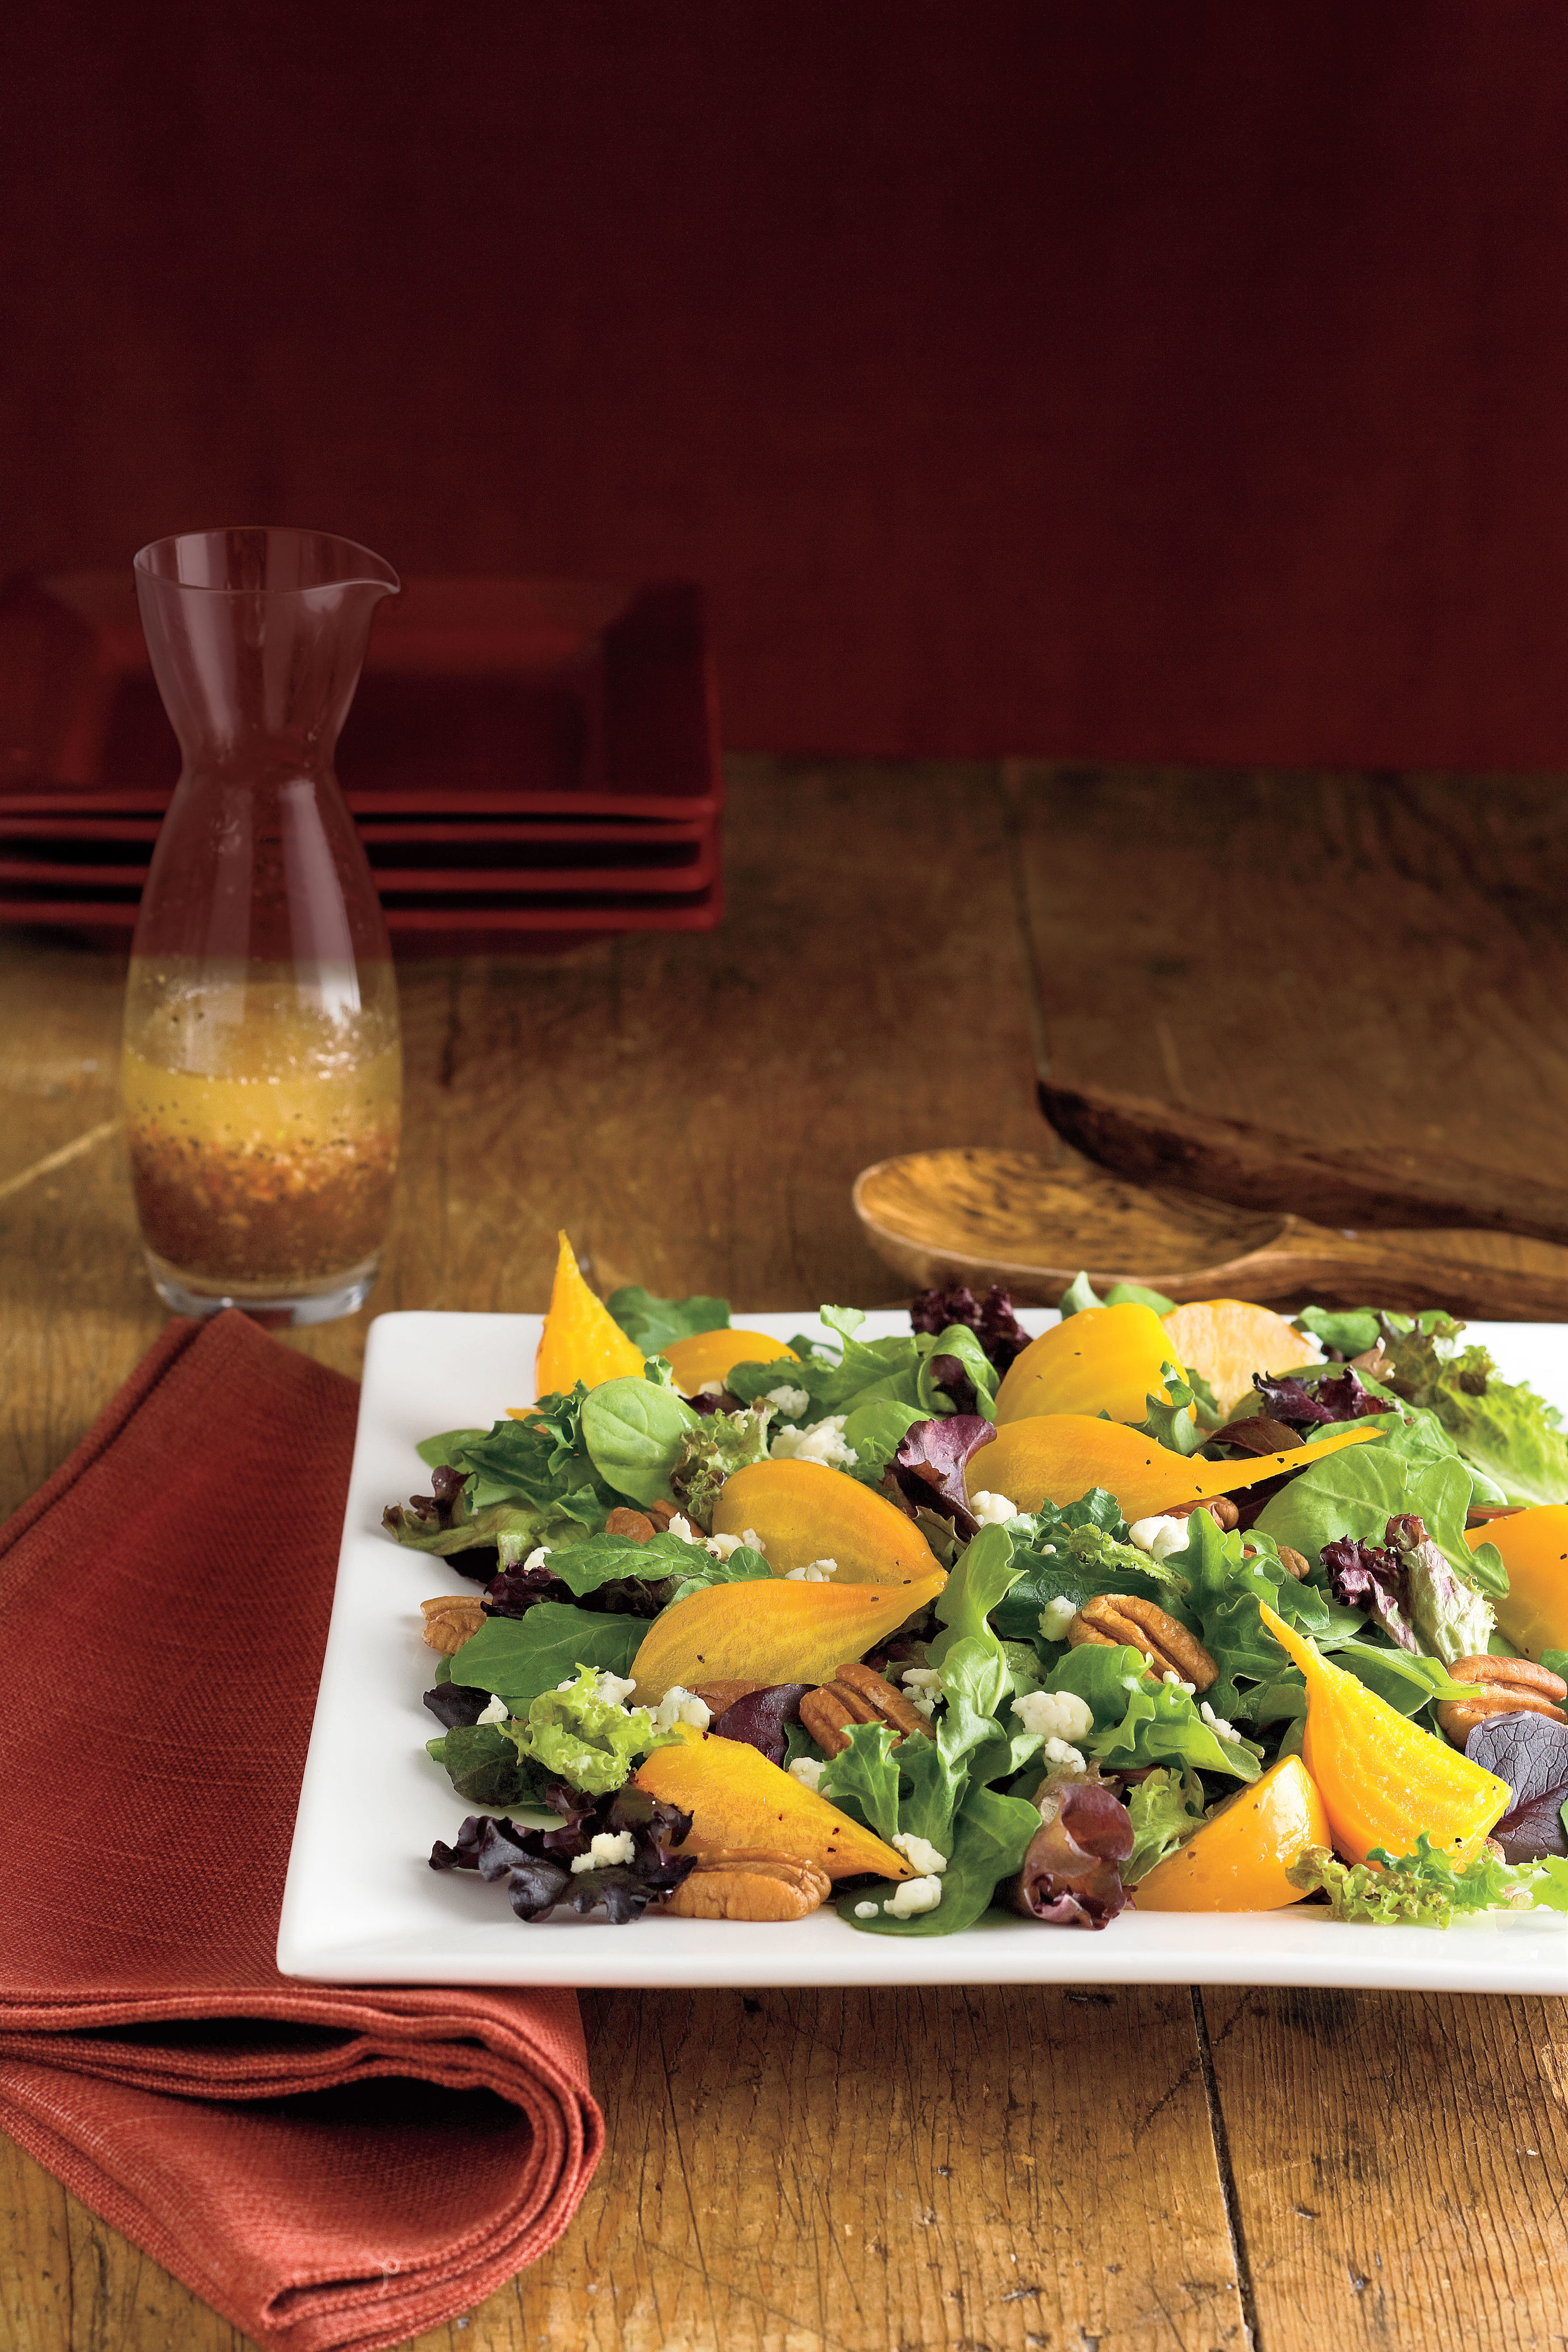 Delicious and Golden Salad